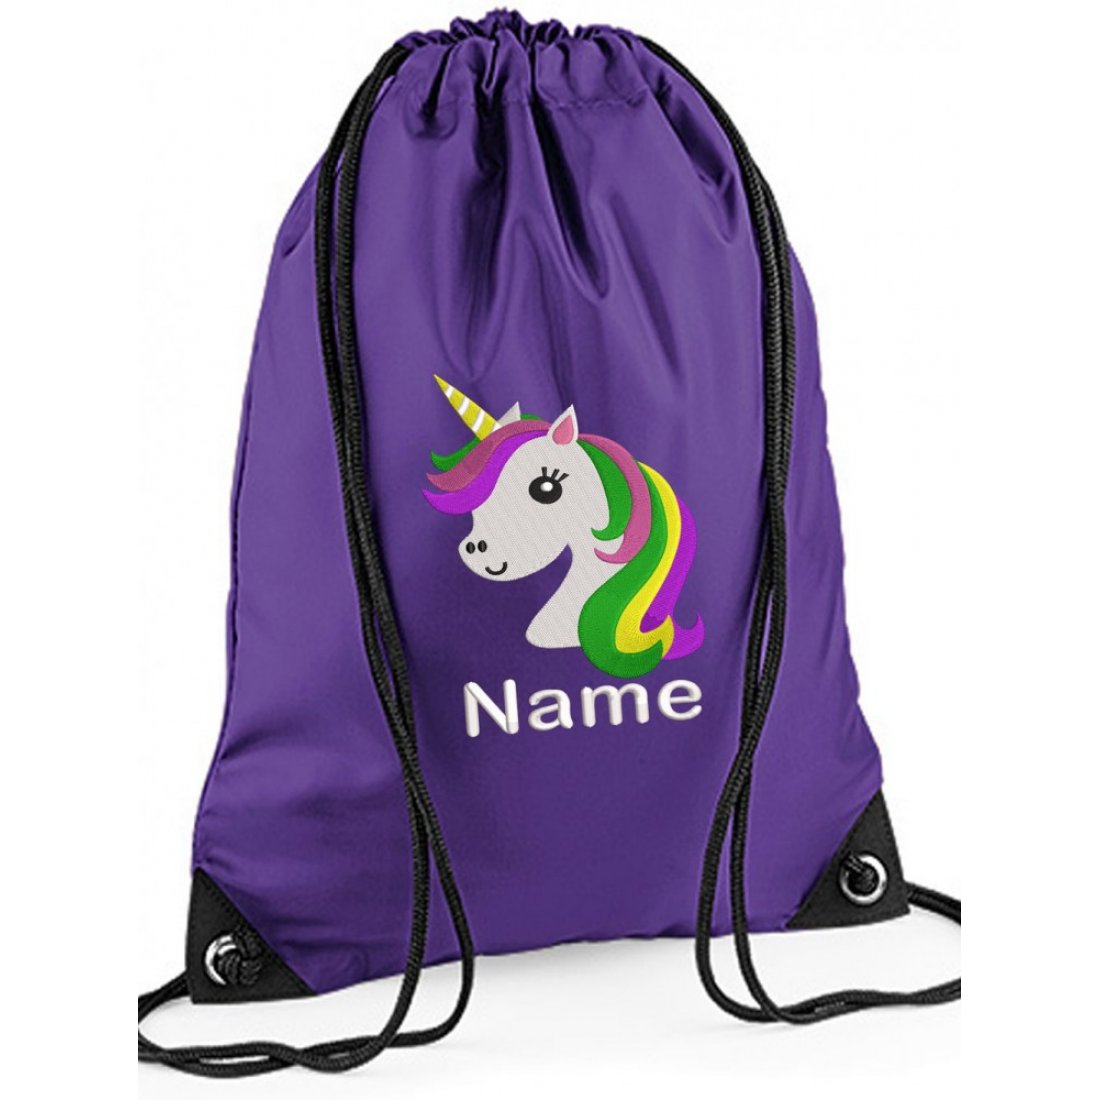 Personalised Embroidered Unicorn Drawstring Gym Bag